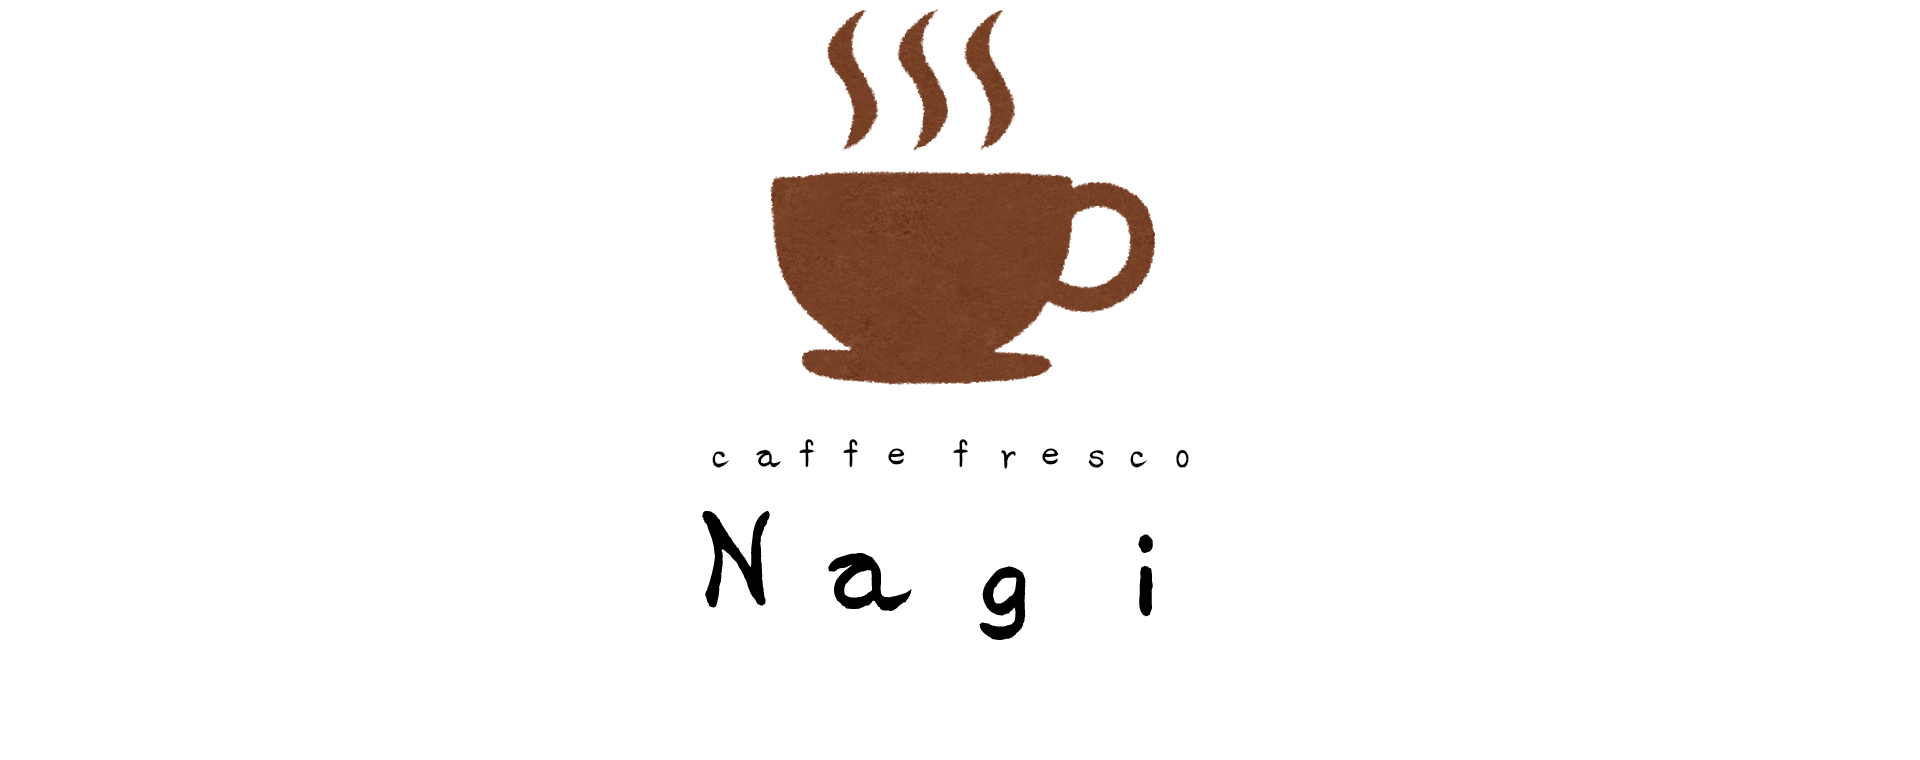 広島市西区にあるコーヒーの家庭焙煎教室 caffe fresco nagi (カフェフレスコ ナギ)